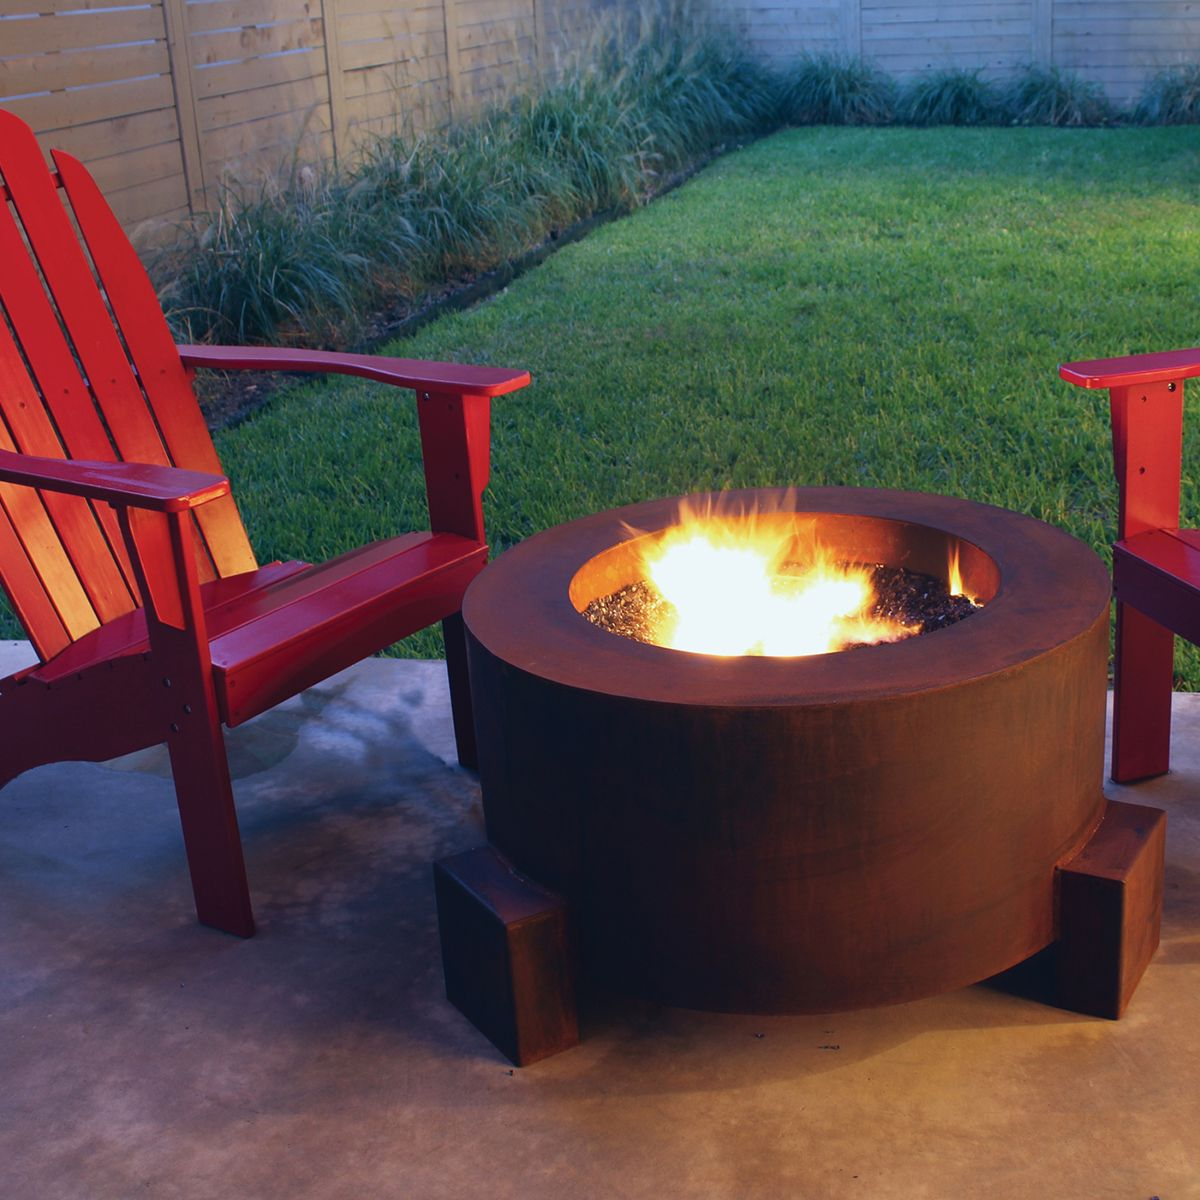 Cor-Ten Steel Fire Pit | 30-In Round With Optional Lid - Cor-Ten Steel Fire Pit 30-In Round With Optional Lid Inspire